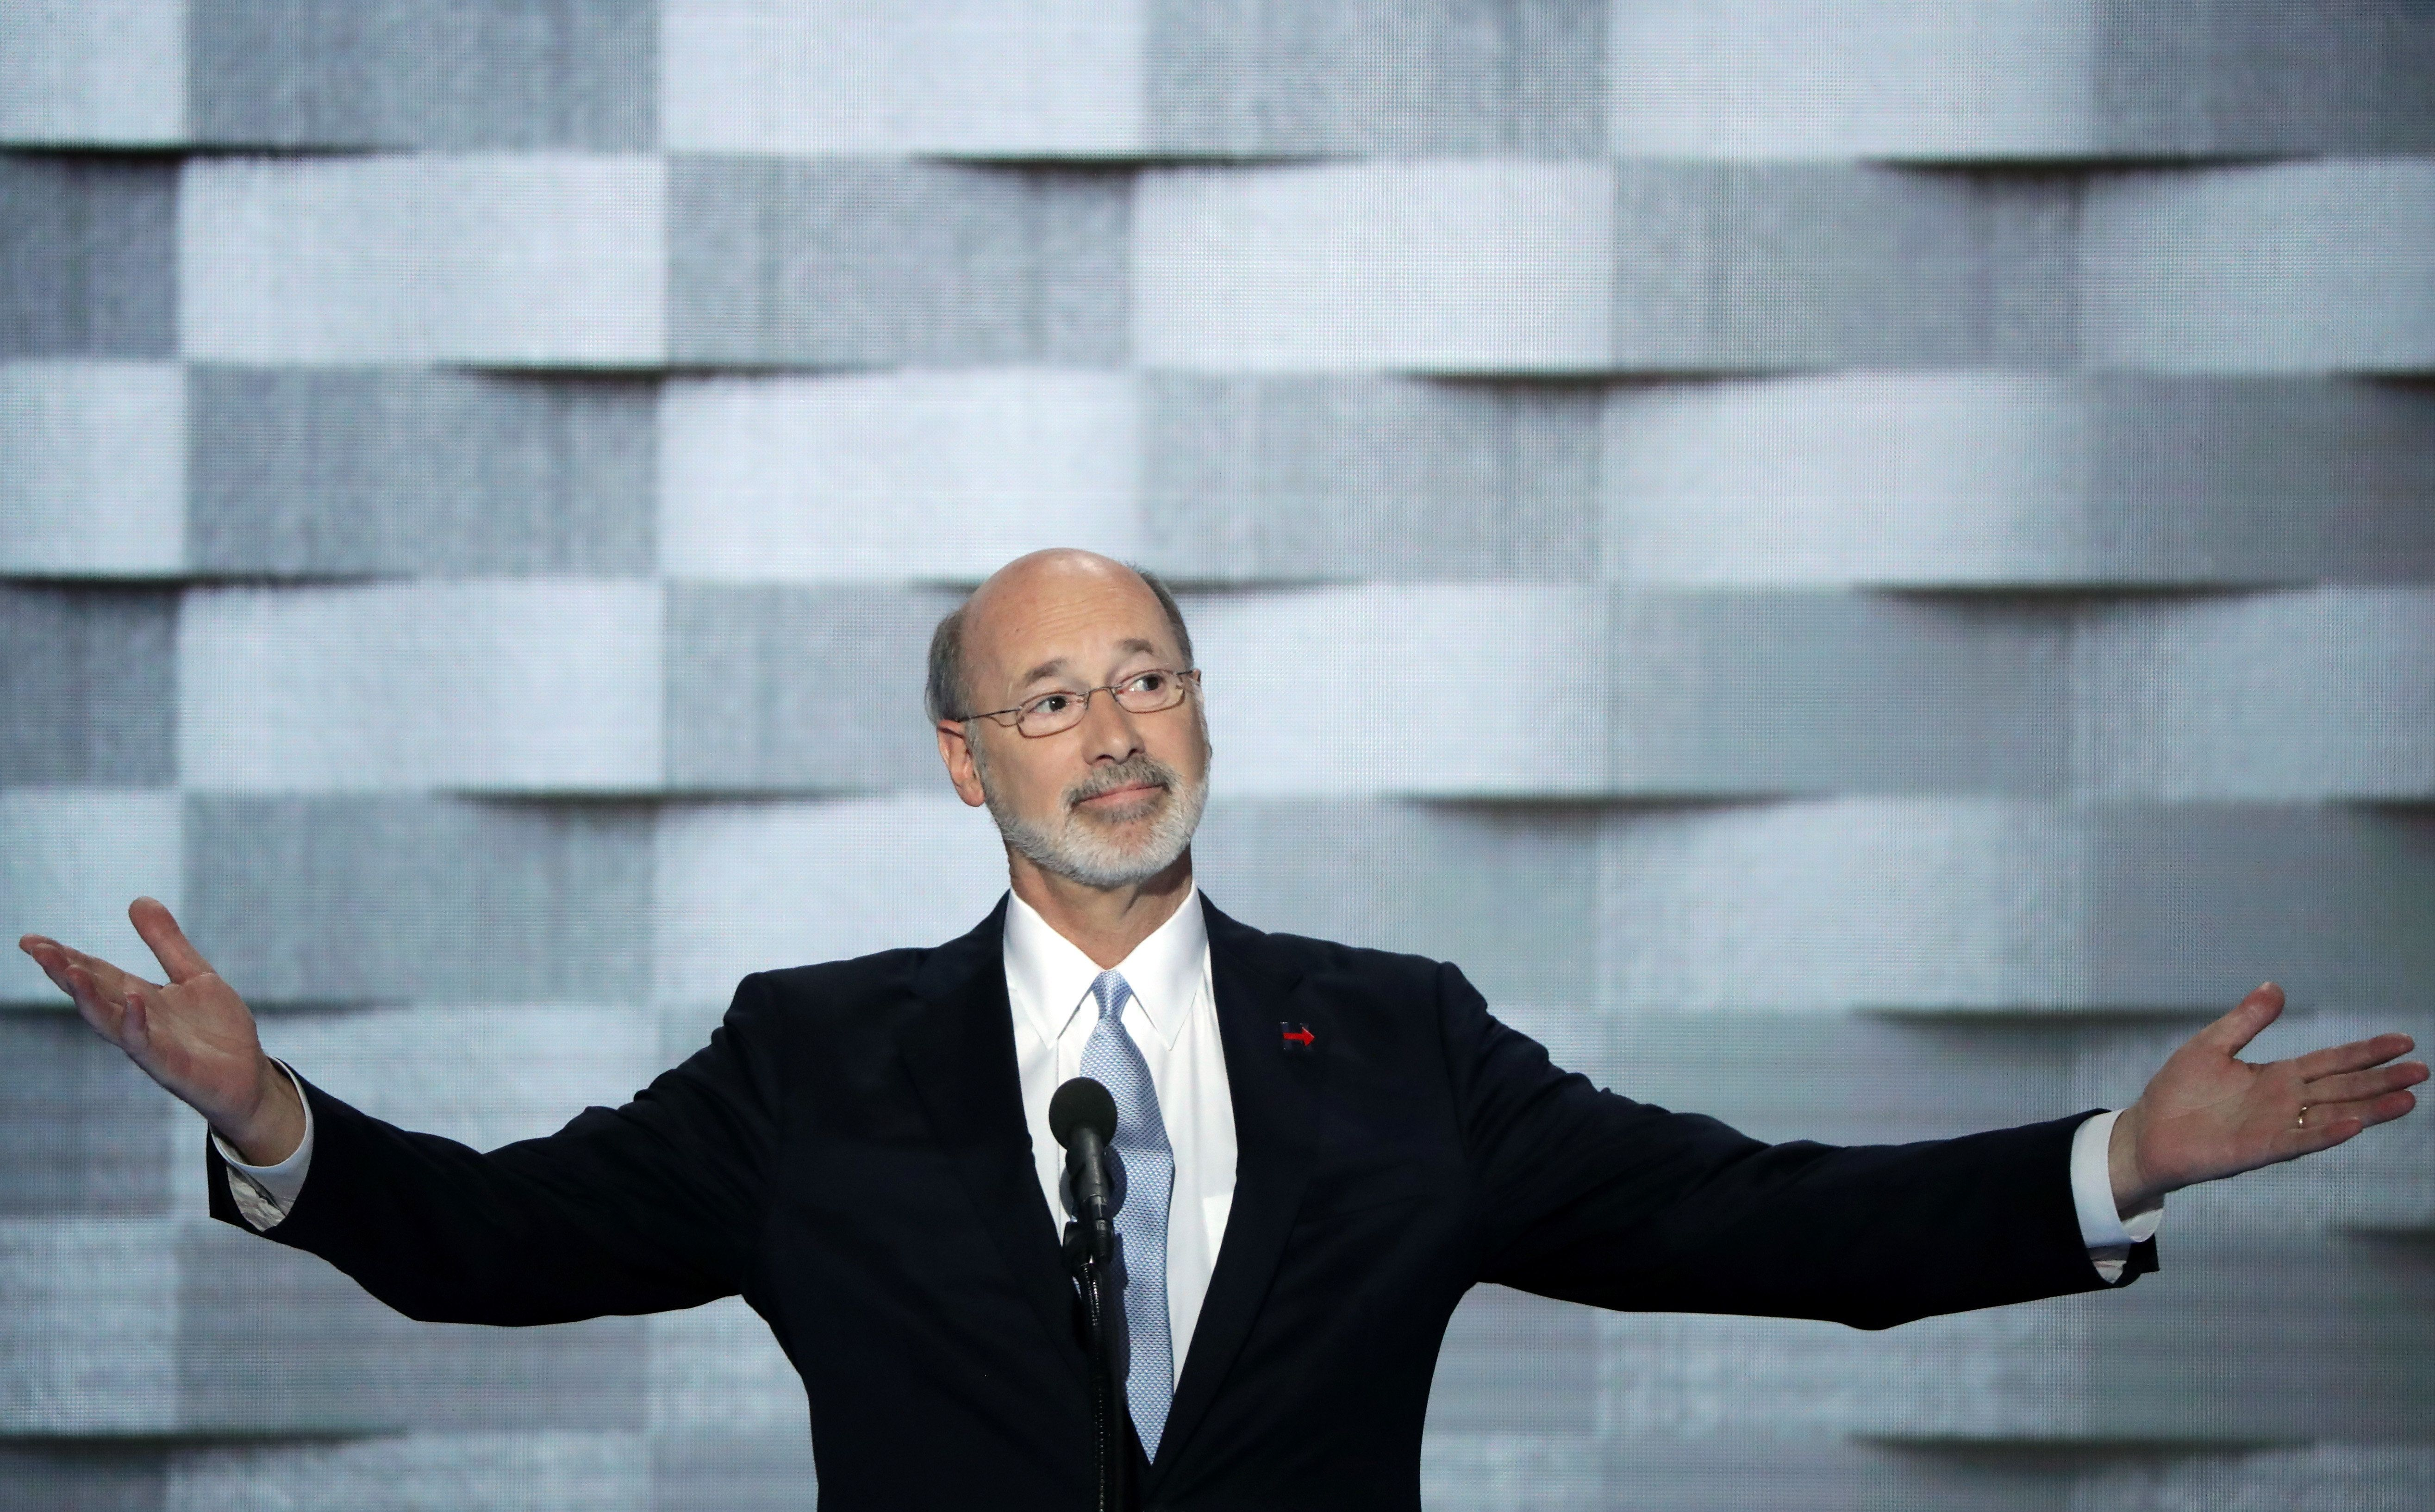 PHILADELPHIA, PA - JULY 28: Pennsylvania Governor Tom Wolf delivers remarks on the fourth day of the Democratic National Convention at the Wells Fargo Center, July 28, 2016 in Philadelphia, Pennsylvania. Democratic presidential candidate Hillary Clinton received the number of votes needed to secure the party's nomination. An estimated 50,000 people are expected in Philadelphia, including hundreds of protesters and members of the media. The four-day Democratic National Convention kicked off July 25. (Photo by Alex Wong/Getty Images)